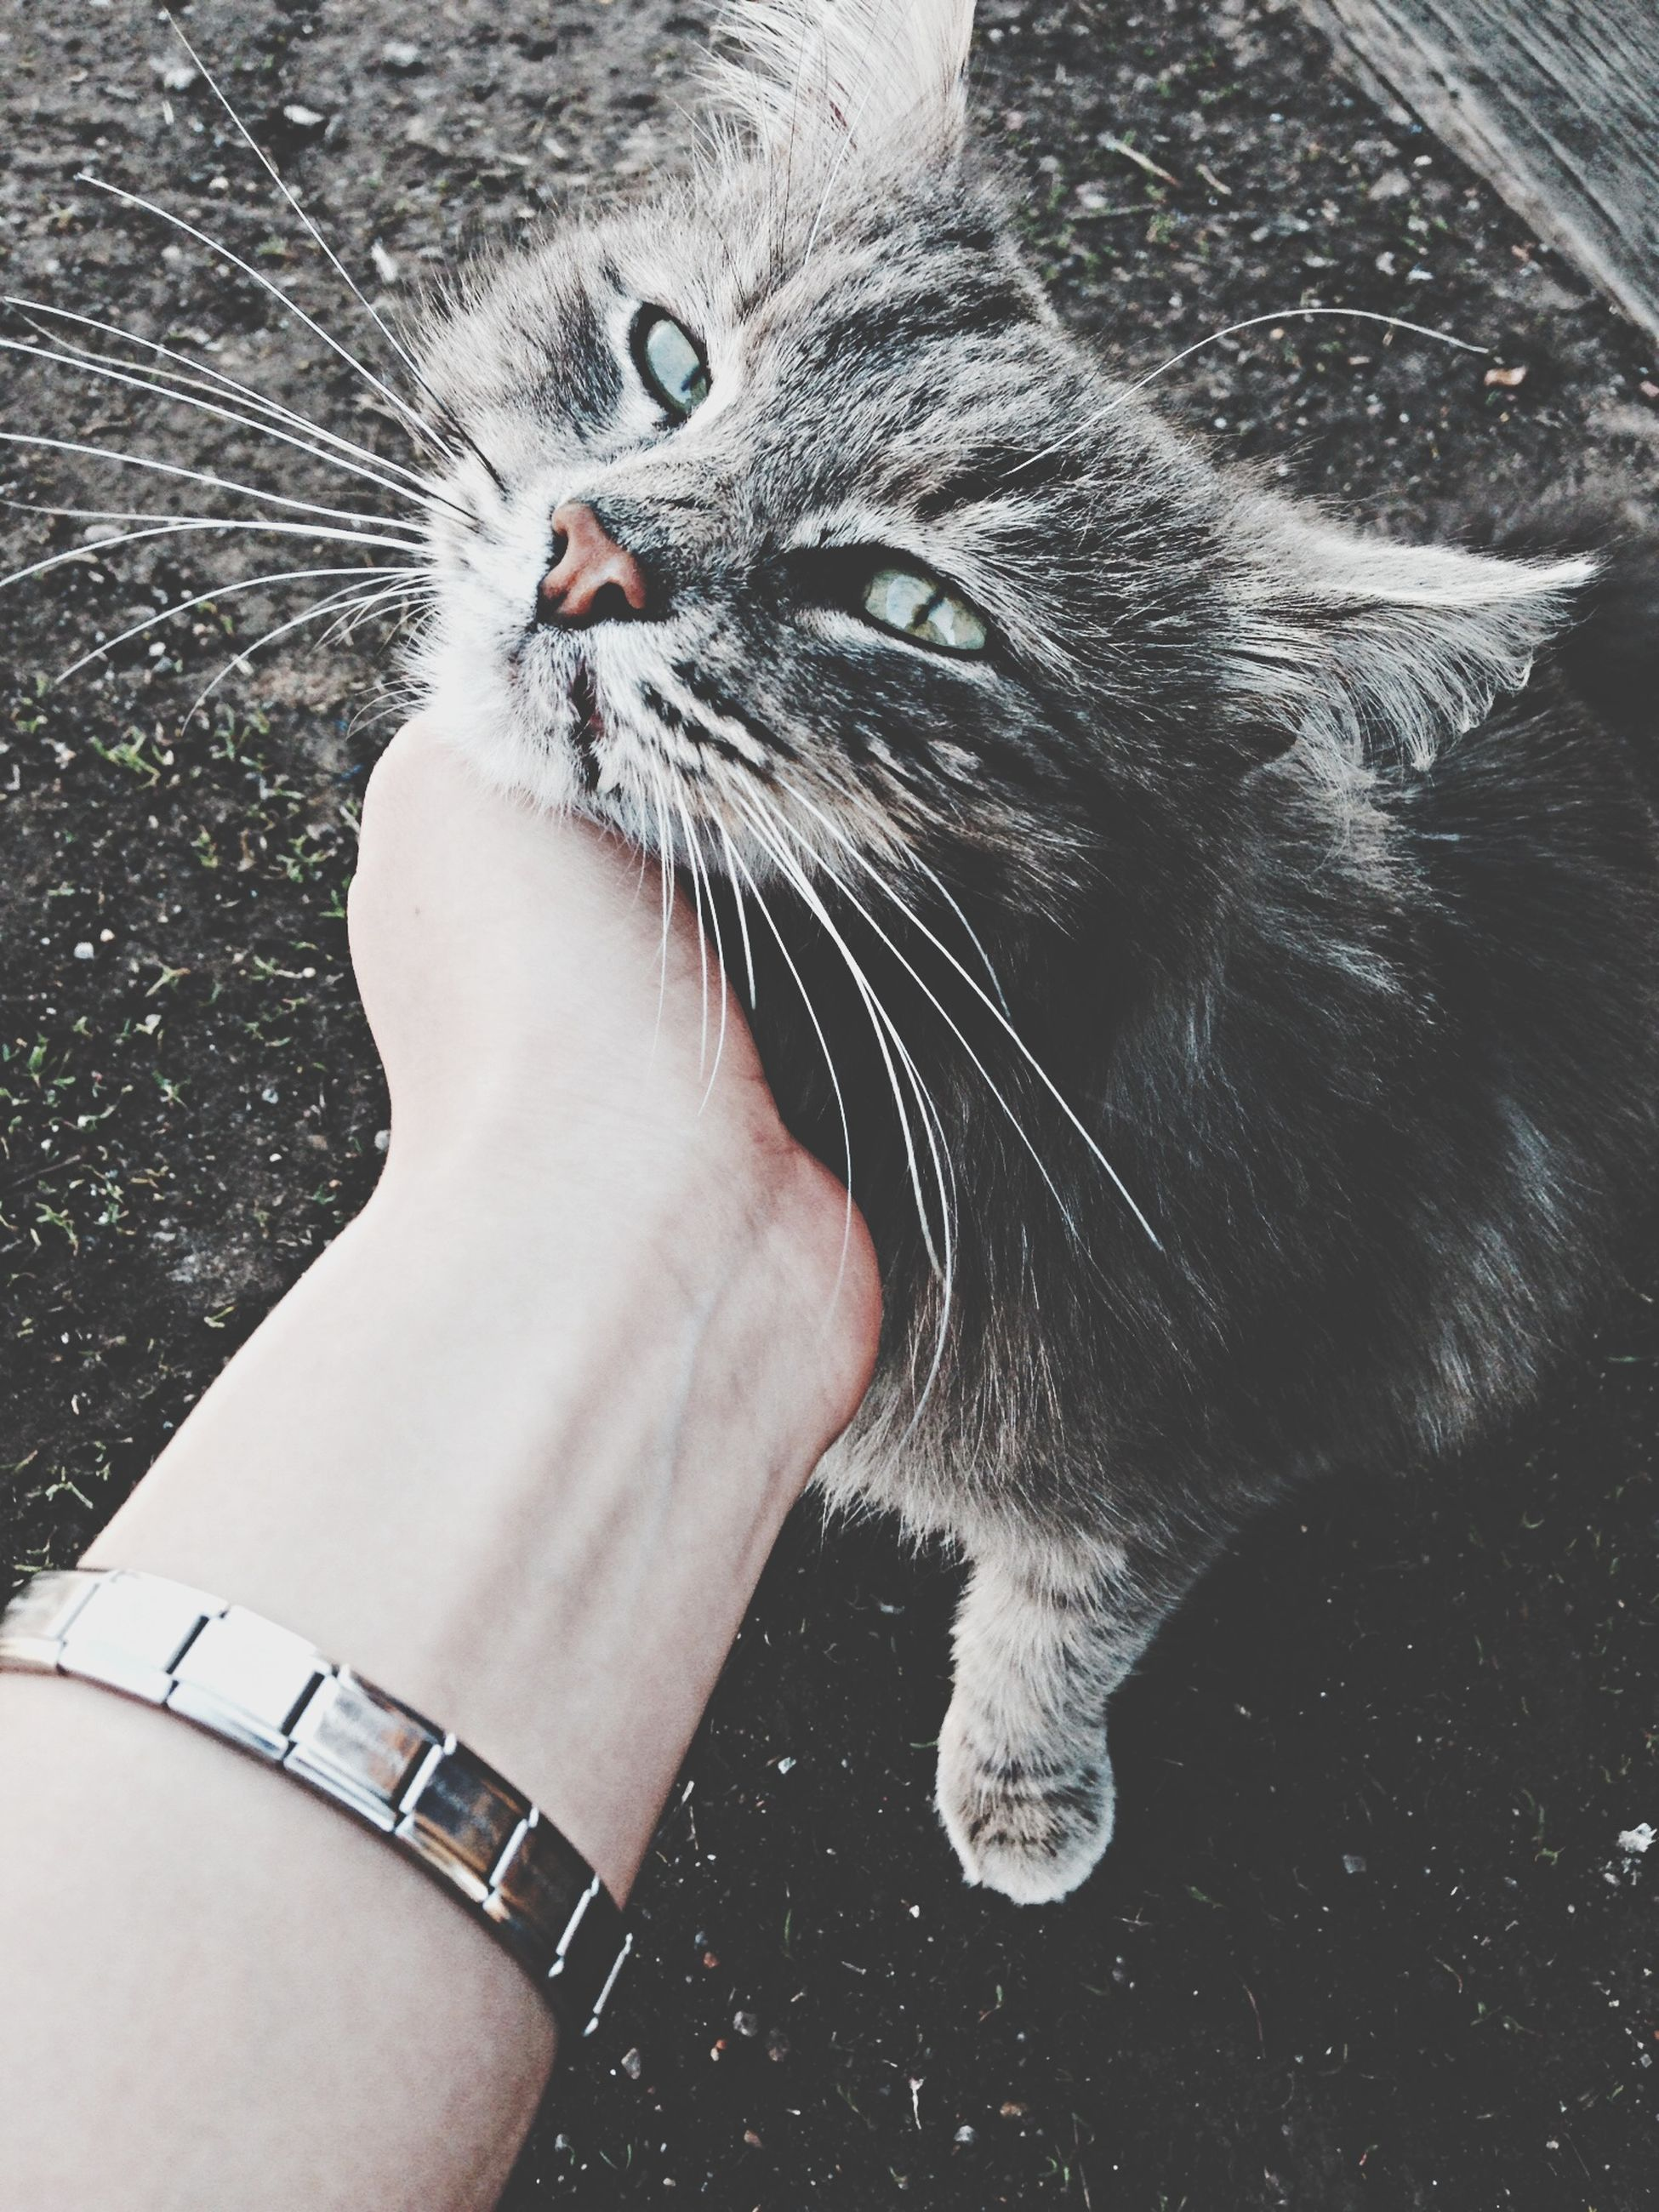 one animal, animal themes, pets, domestic animals, domestic cat, part of, high angle view, cat, mammal, cropped, close-up, person, animal head, animal body part, unrecognizable person, personal perspective, whisker